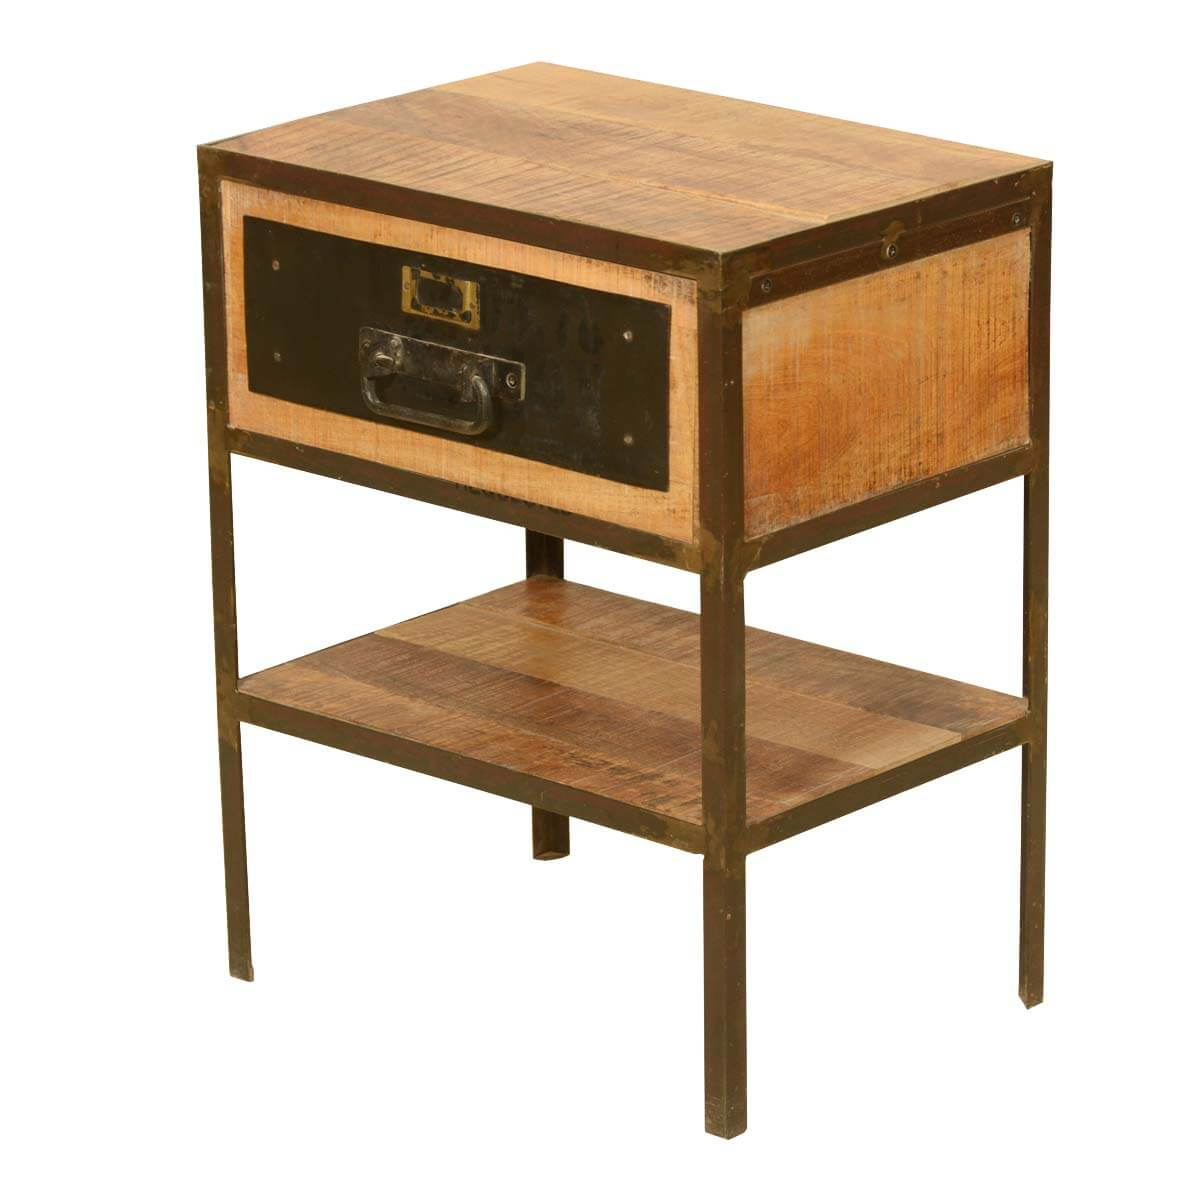 Belvidere Rustic Solid Wood 2 Tier 1 Drawer Industrial End Table